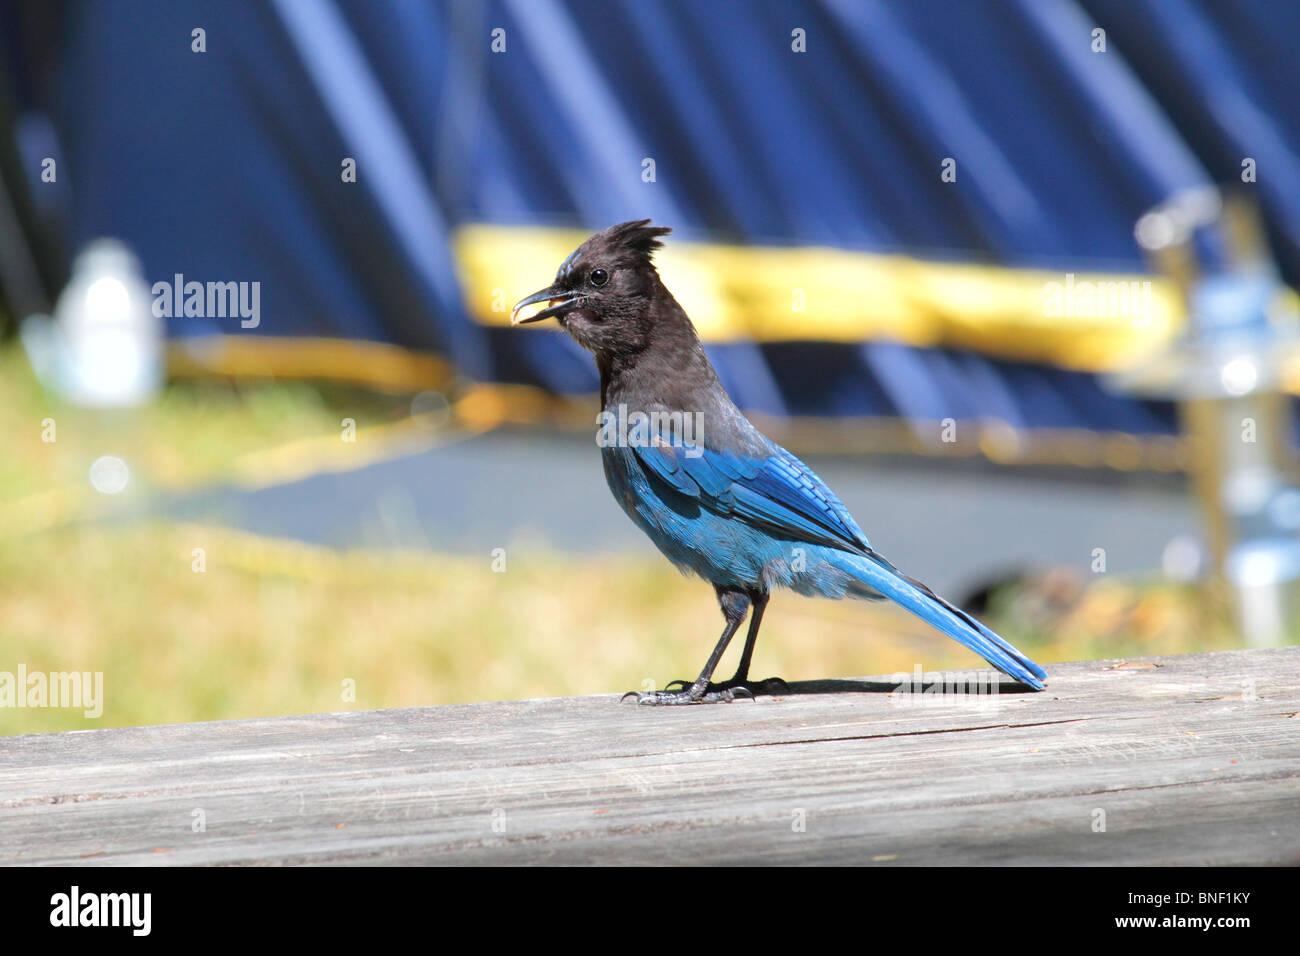 stellar jay bird on a picnic table while camping in the pacific northwest. the bird is eating some peanuts it stole - Stock Image